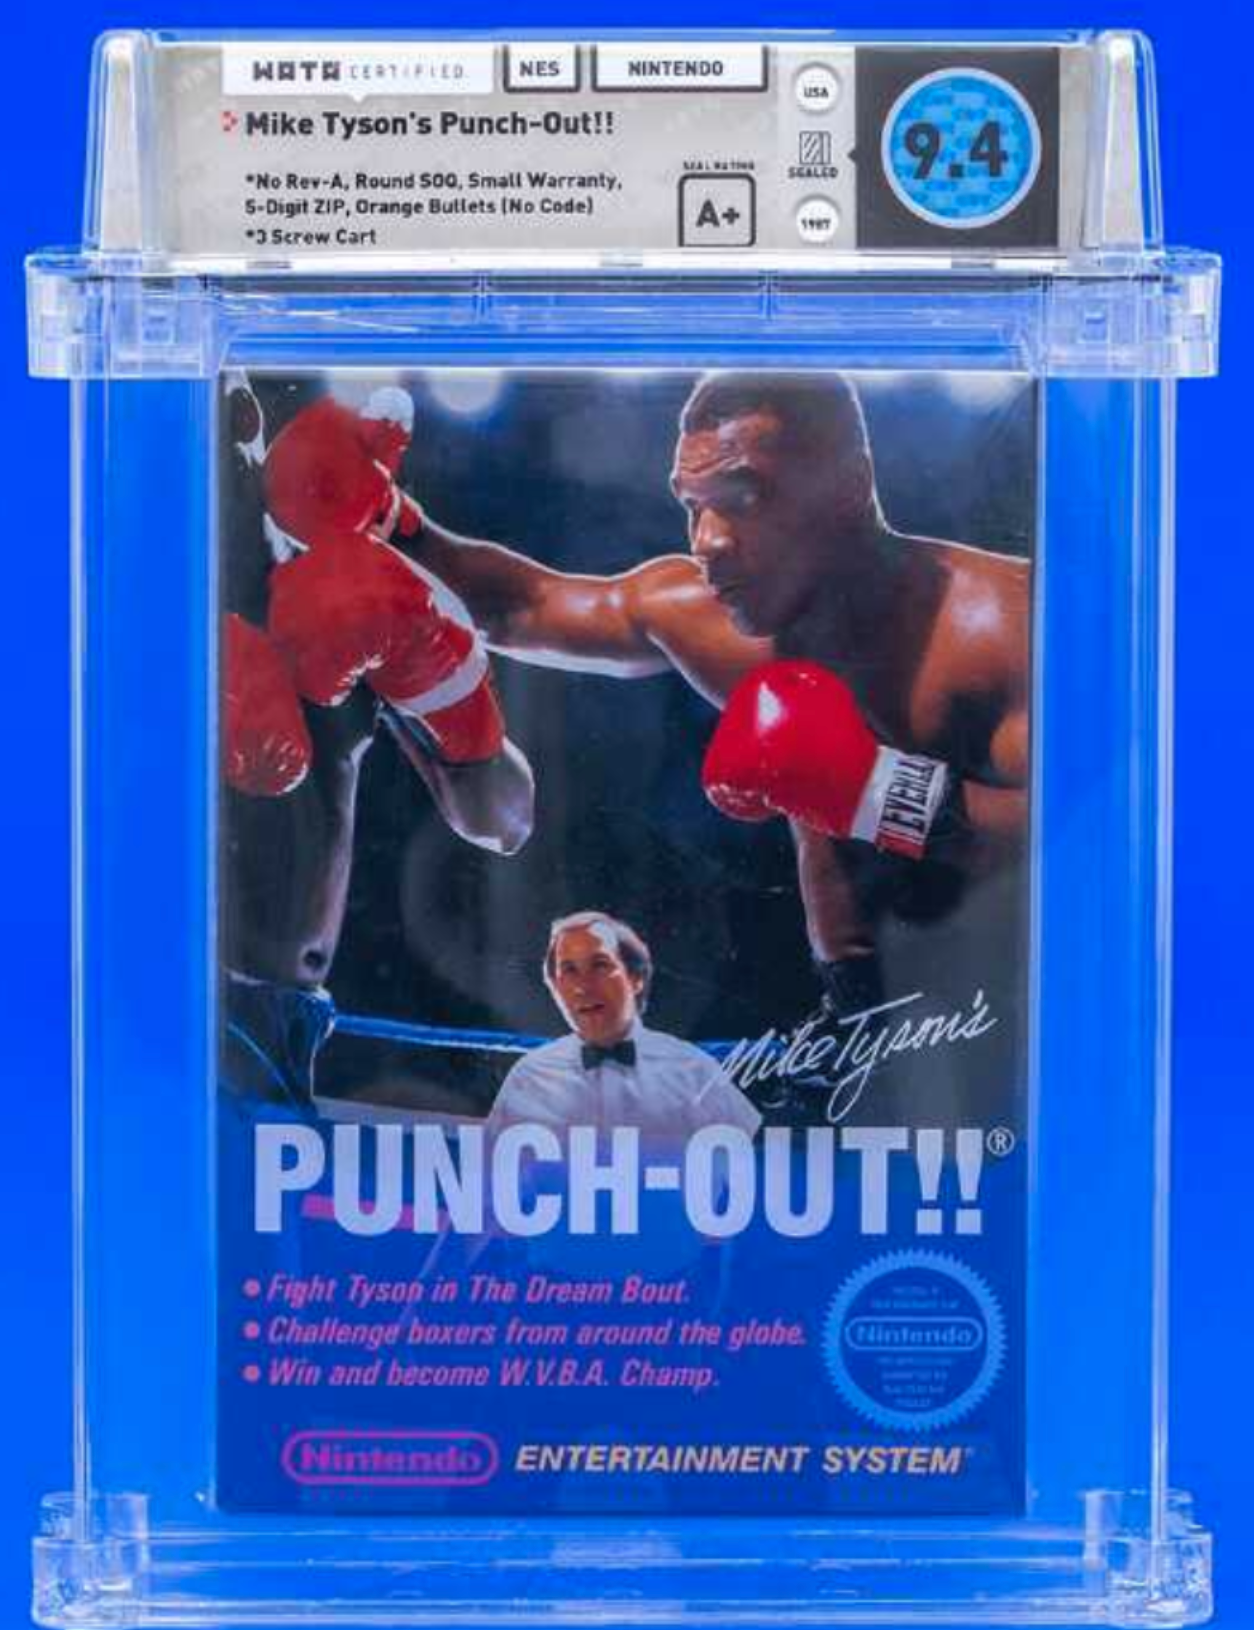 NES Mike Tyson's PUNCH-OUT!! (WATA 9.4 Seal A+)